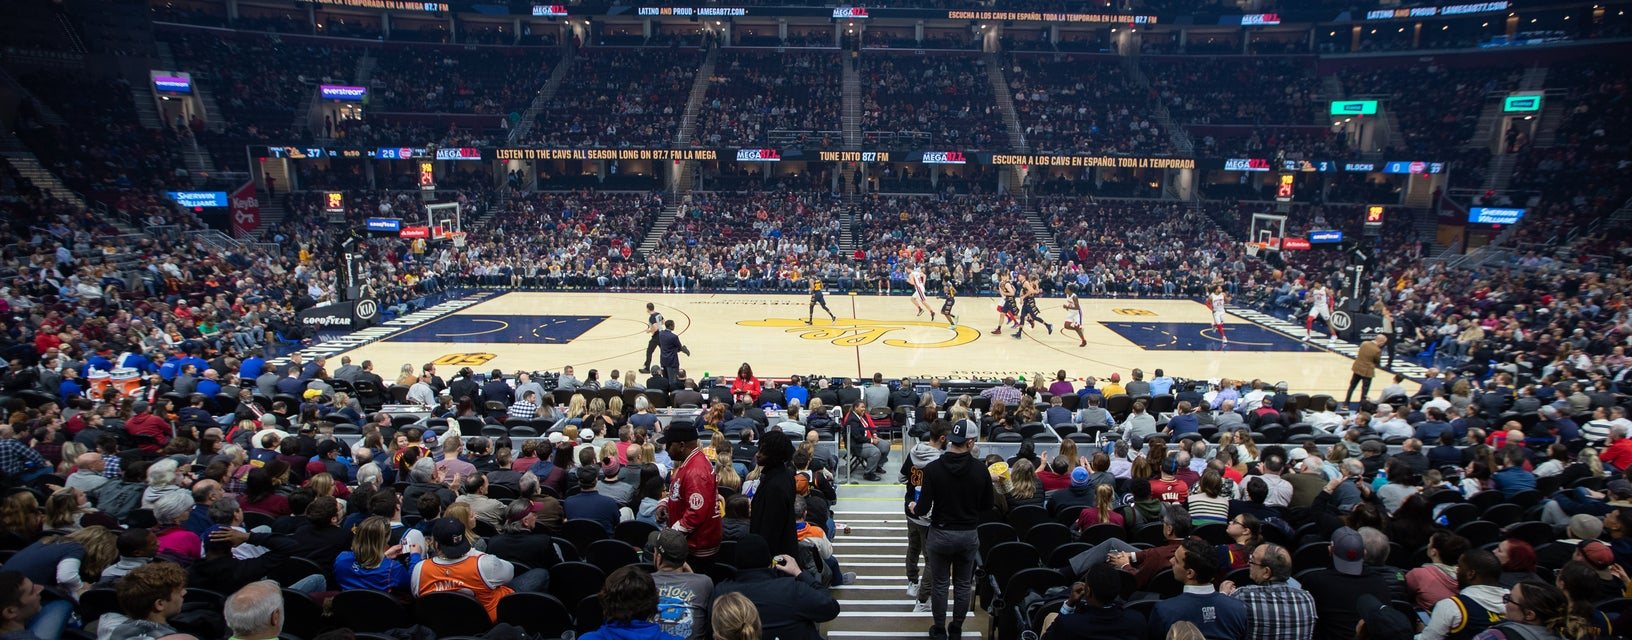 Seat view from Gold Center Straight